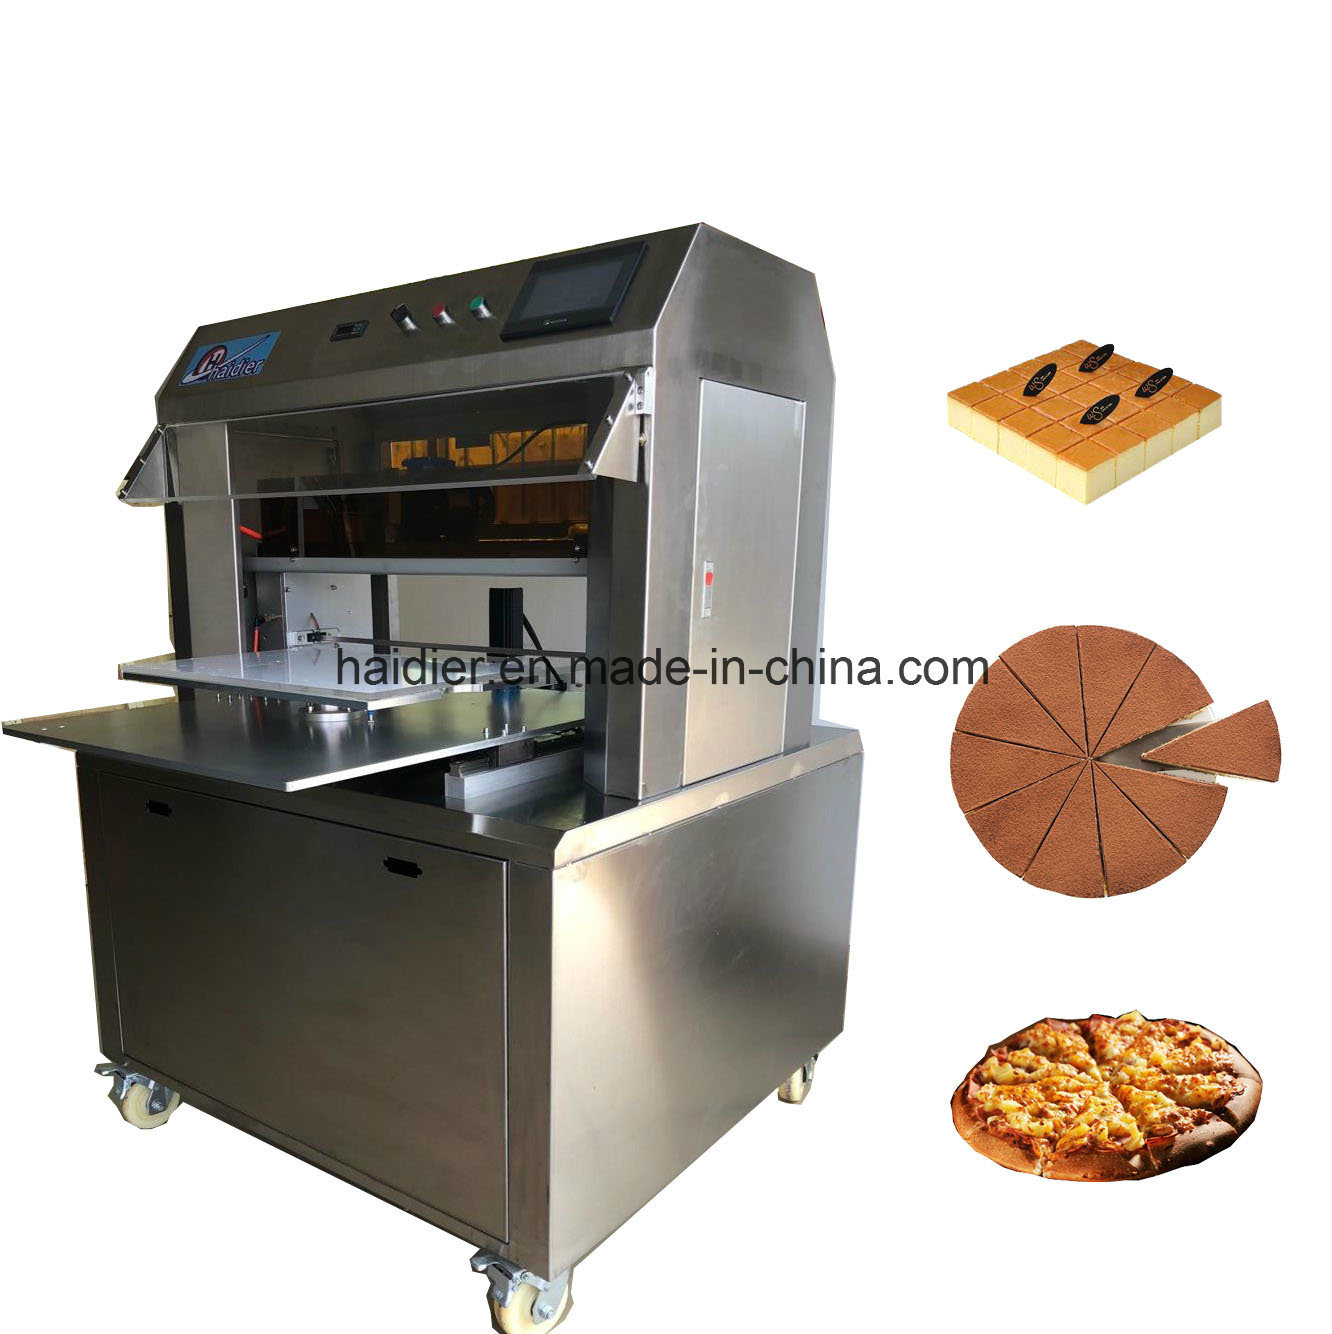 Bakery Pizza Slicing Machine/Full Automatic Cake Slicer Machine with Digital PLC Control System